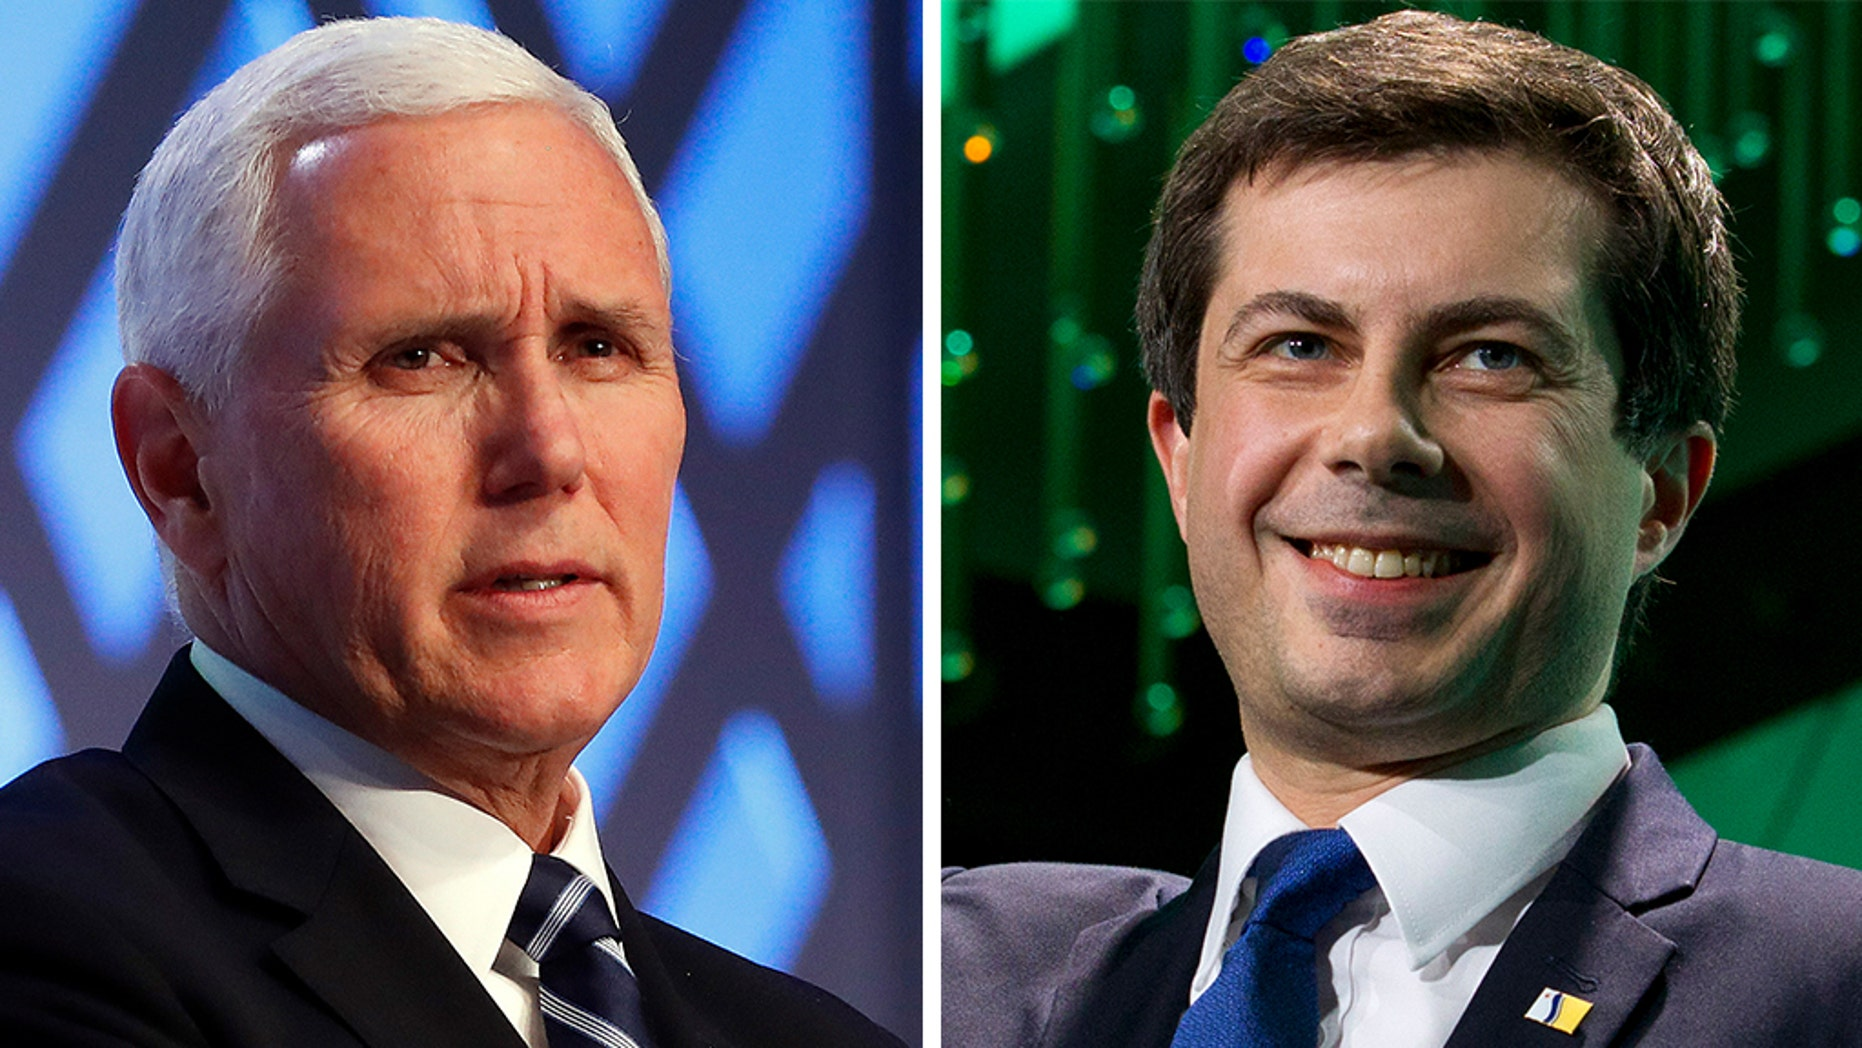 Vice President Mike Pence and Pete Buttigieg